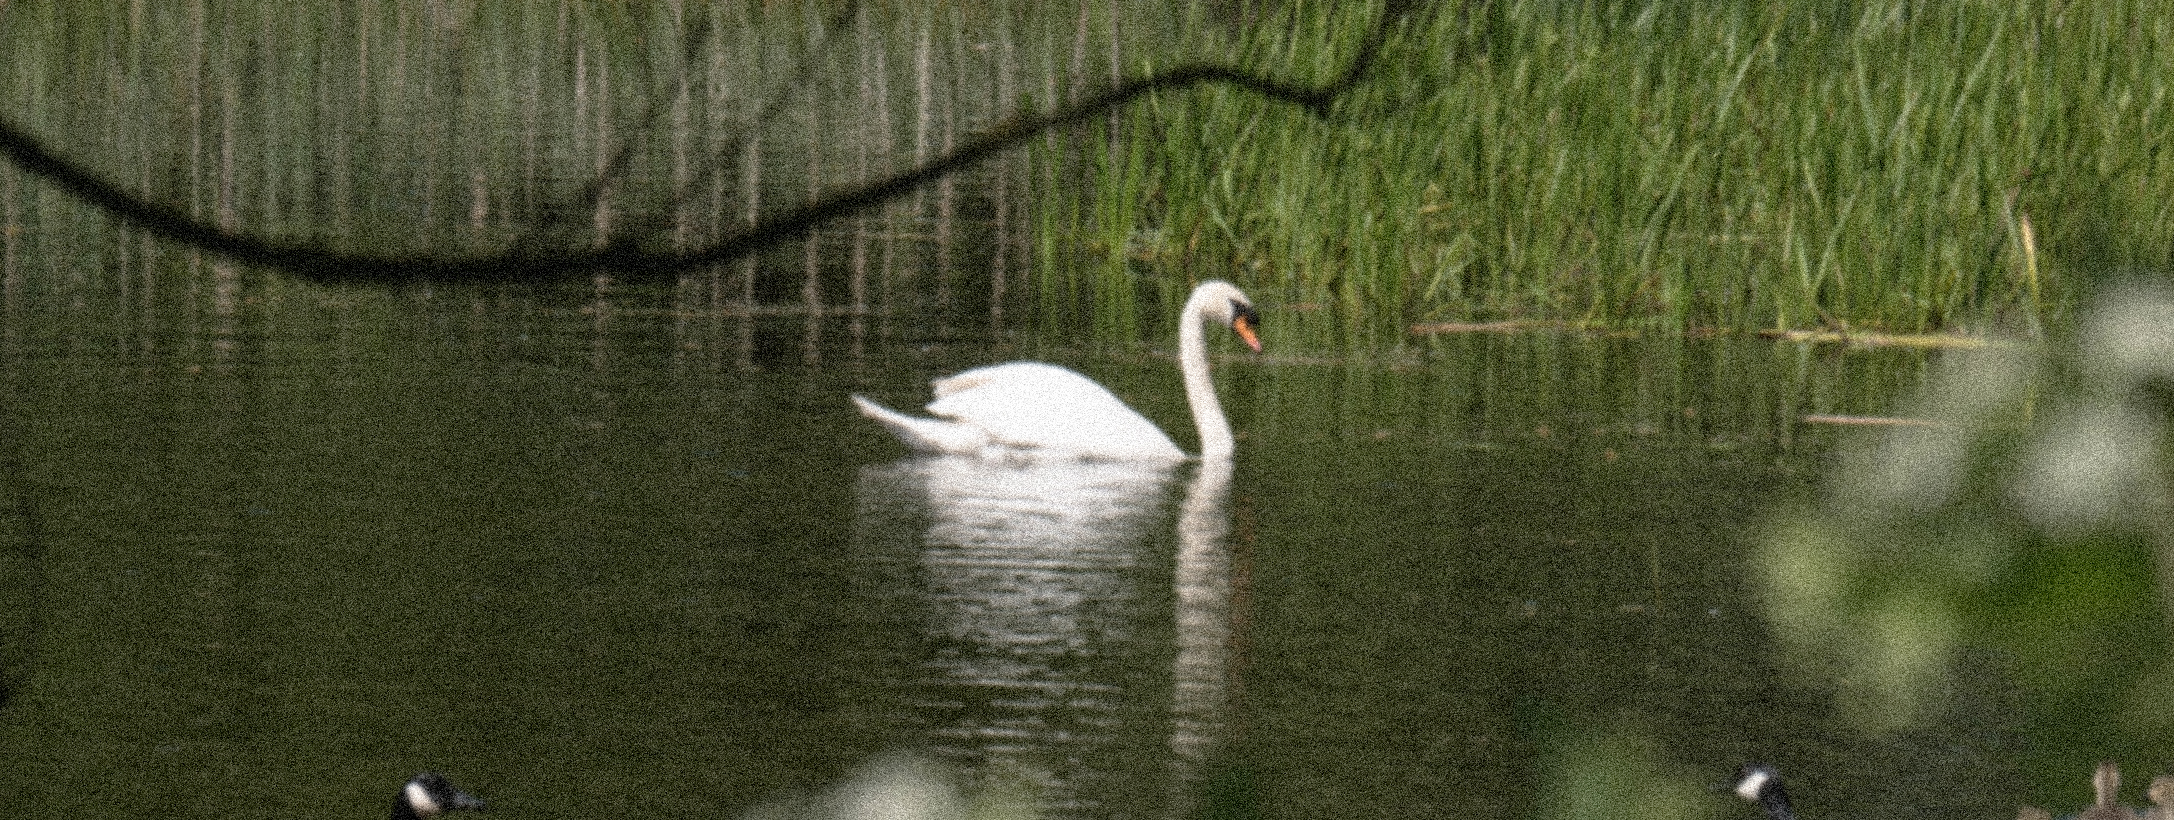 Photograph of a swan in water